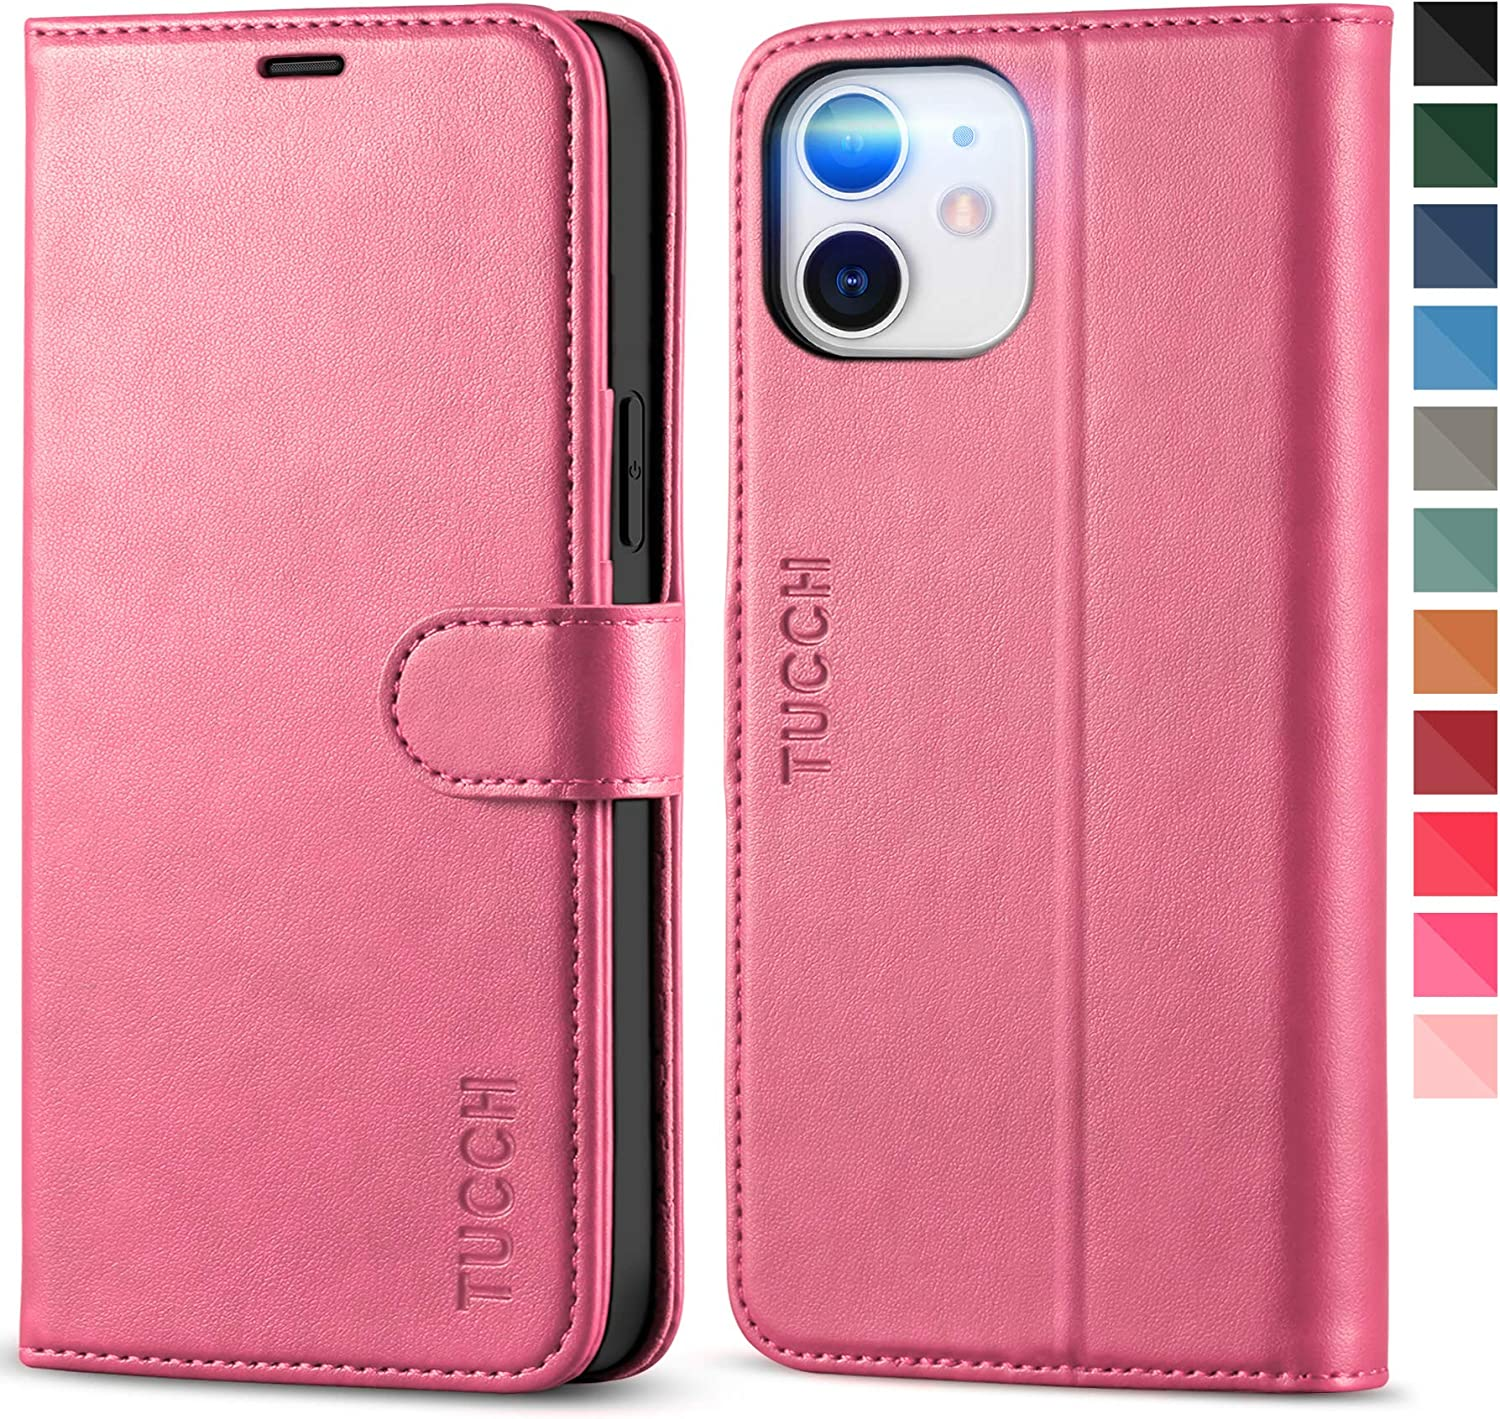 TUCCH Case for iPhone 12/iPhone 12 Pro 5G, RFID Blocking PU Leather Stand Folio Wallet Cover with TPU Protective Interior Shell, Magnetic Card Slot Flip Case Compatible with iPhone 12/12 Pro, Hot Pink